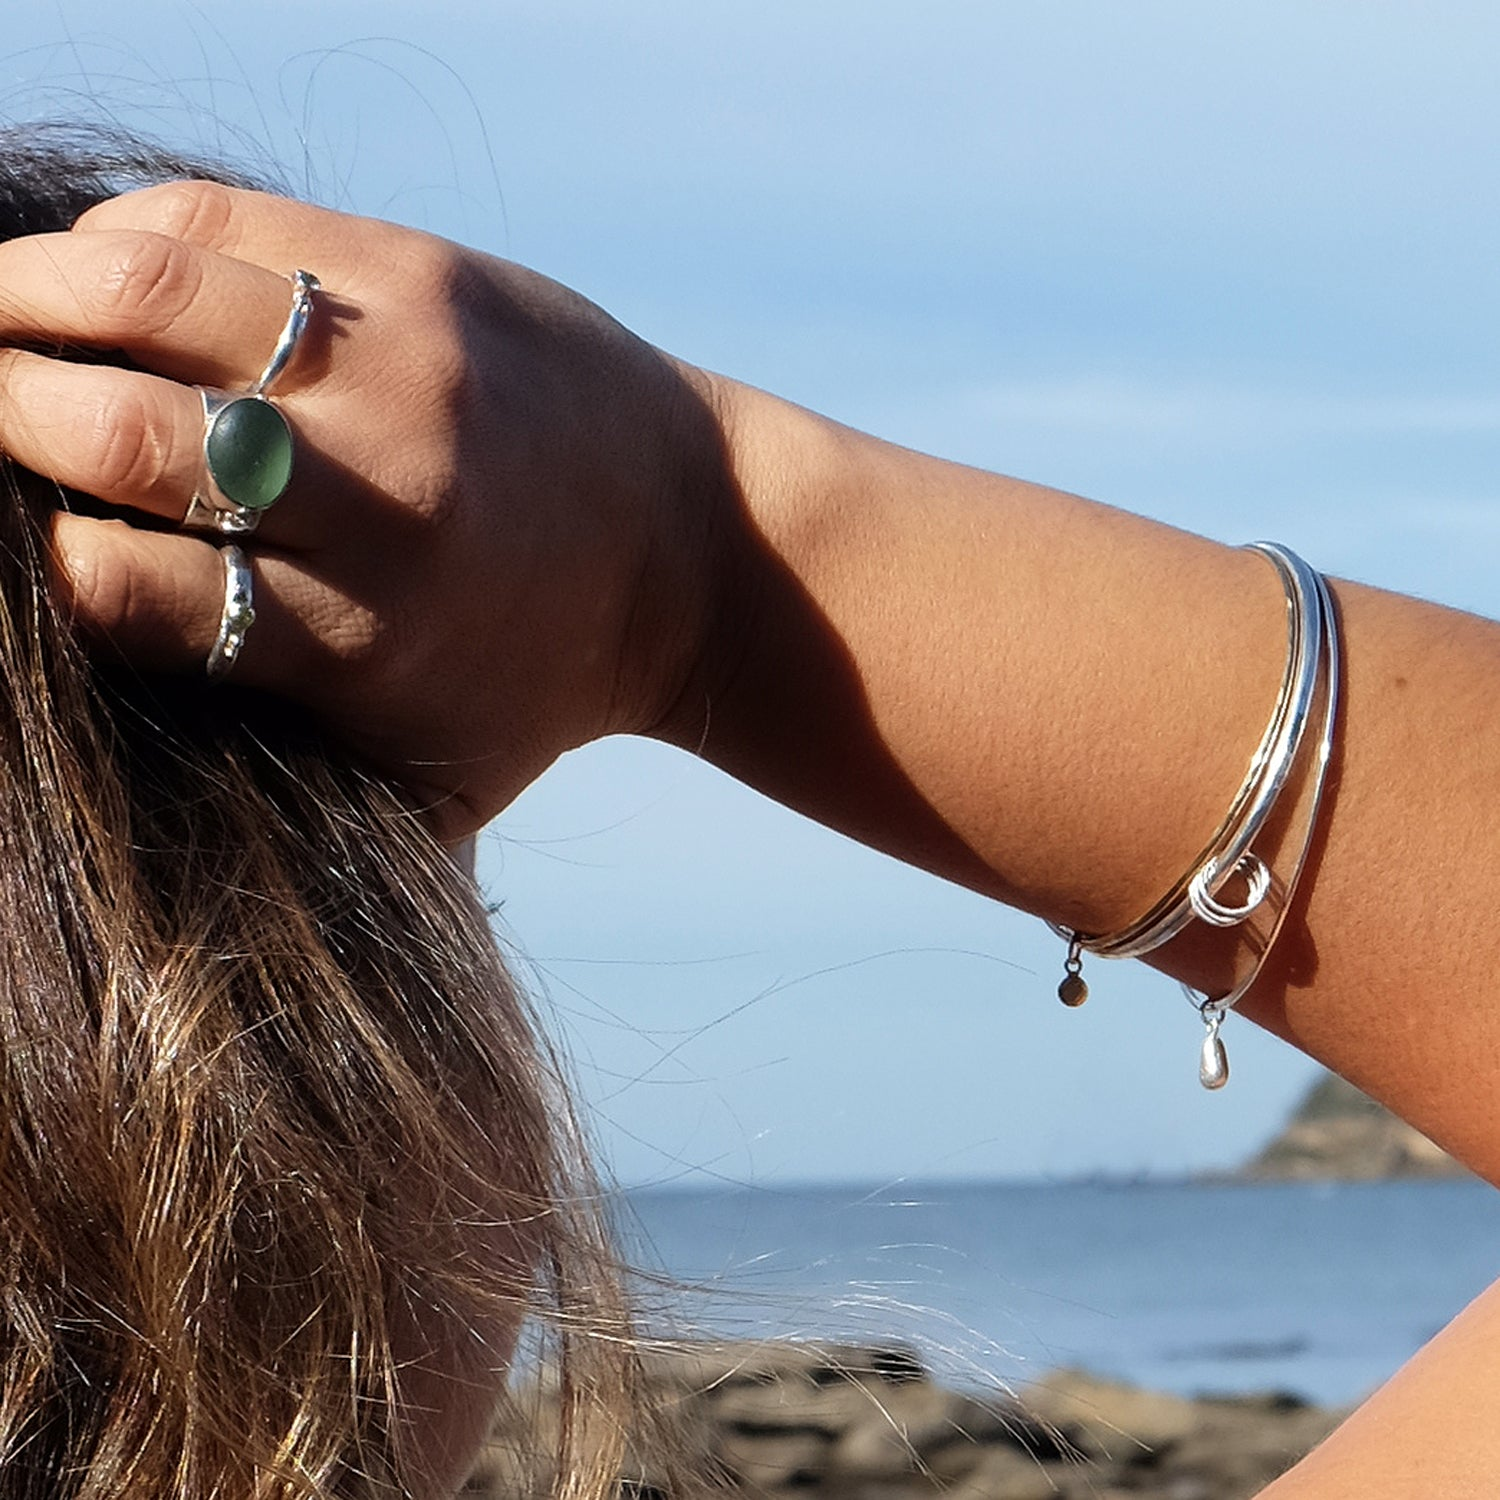 Silver stacking Bangles - kriket broadhurst jewellery on model